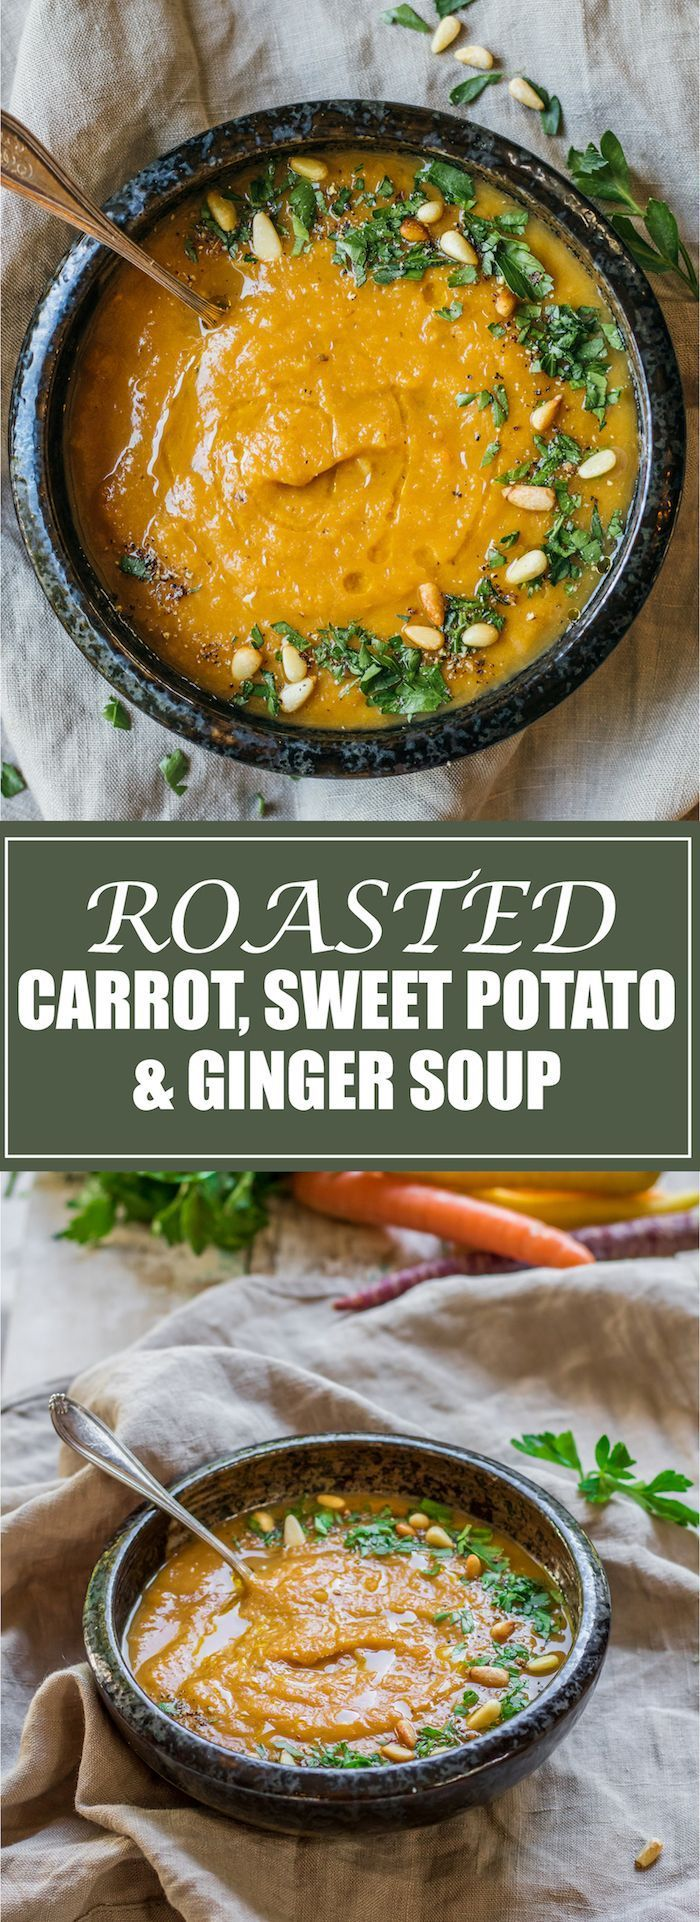 An easy recipe for a healthy and filling soup. Loaded with roasted carrots, sweet potatoes, and immune boosting ginger!